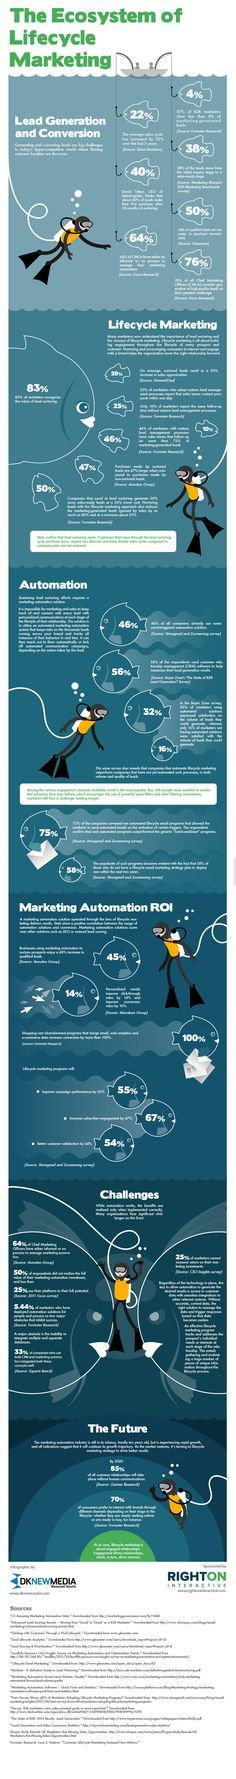 The Ecosystem of Lifecycle Marketing [Infographic]